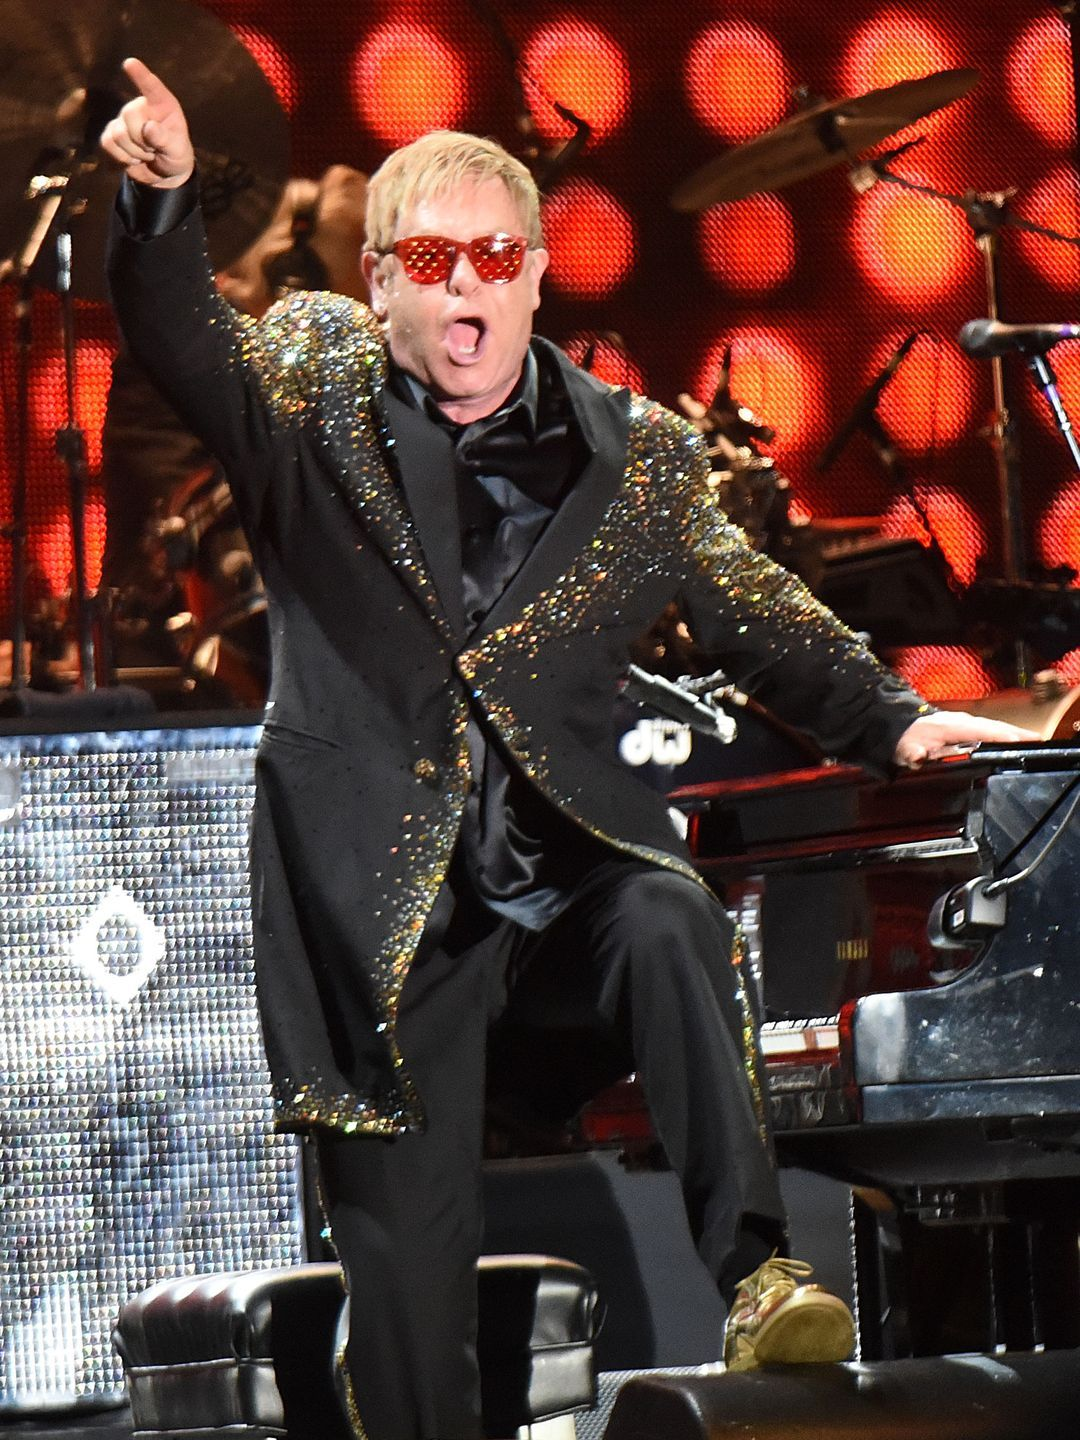 Sir Elton John performs at Piedmont Park in Atlanta.  Chris McKay, Getty Images, for Live Nation